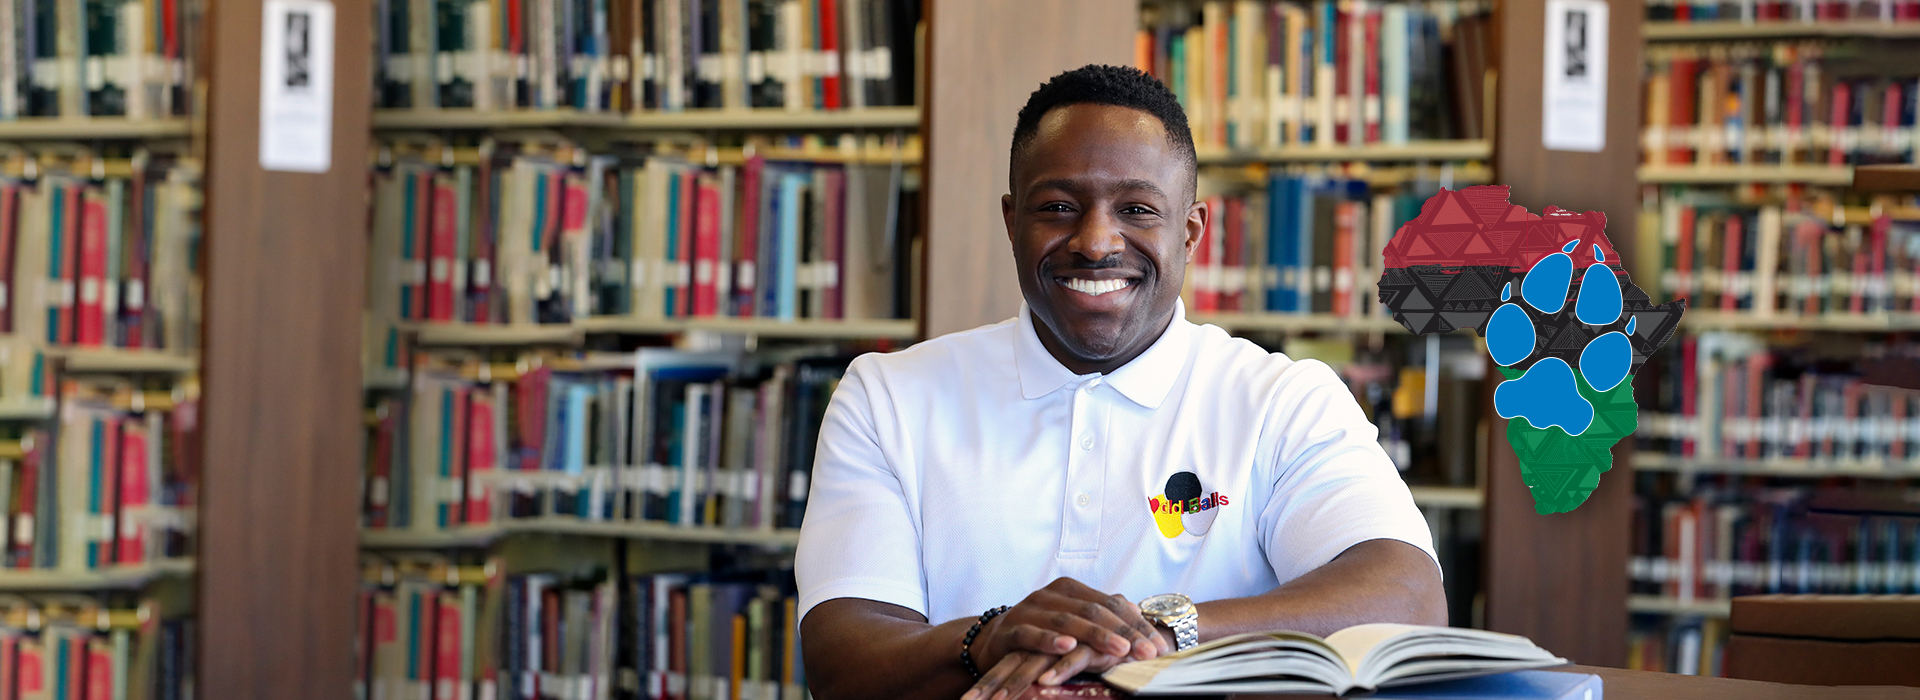 Alumni-owned business strengthening his community through leadership and education